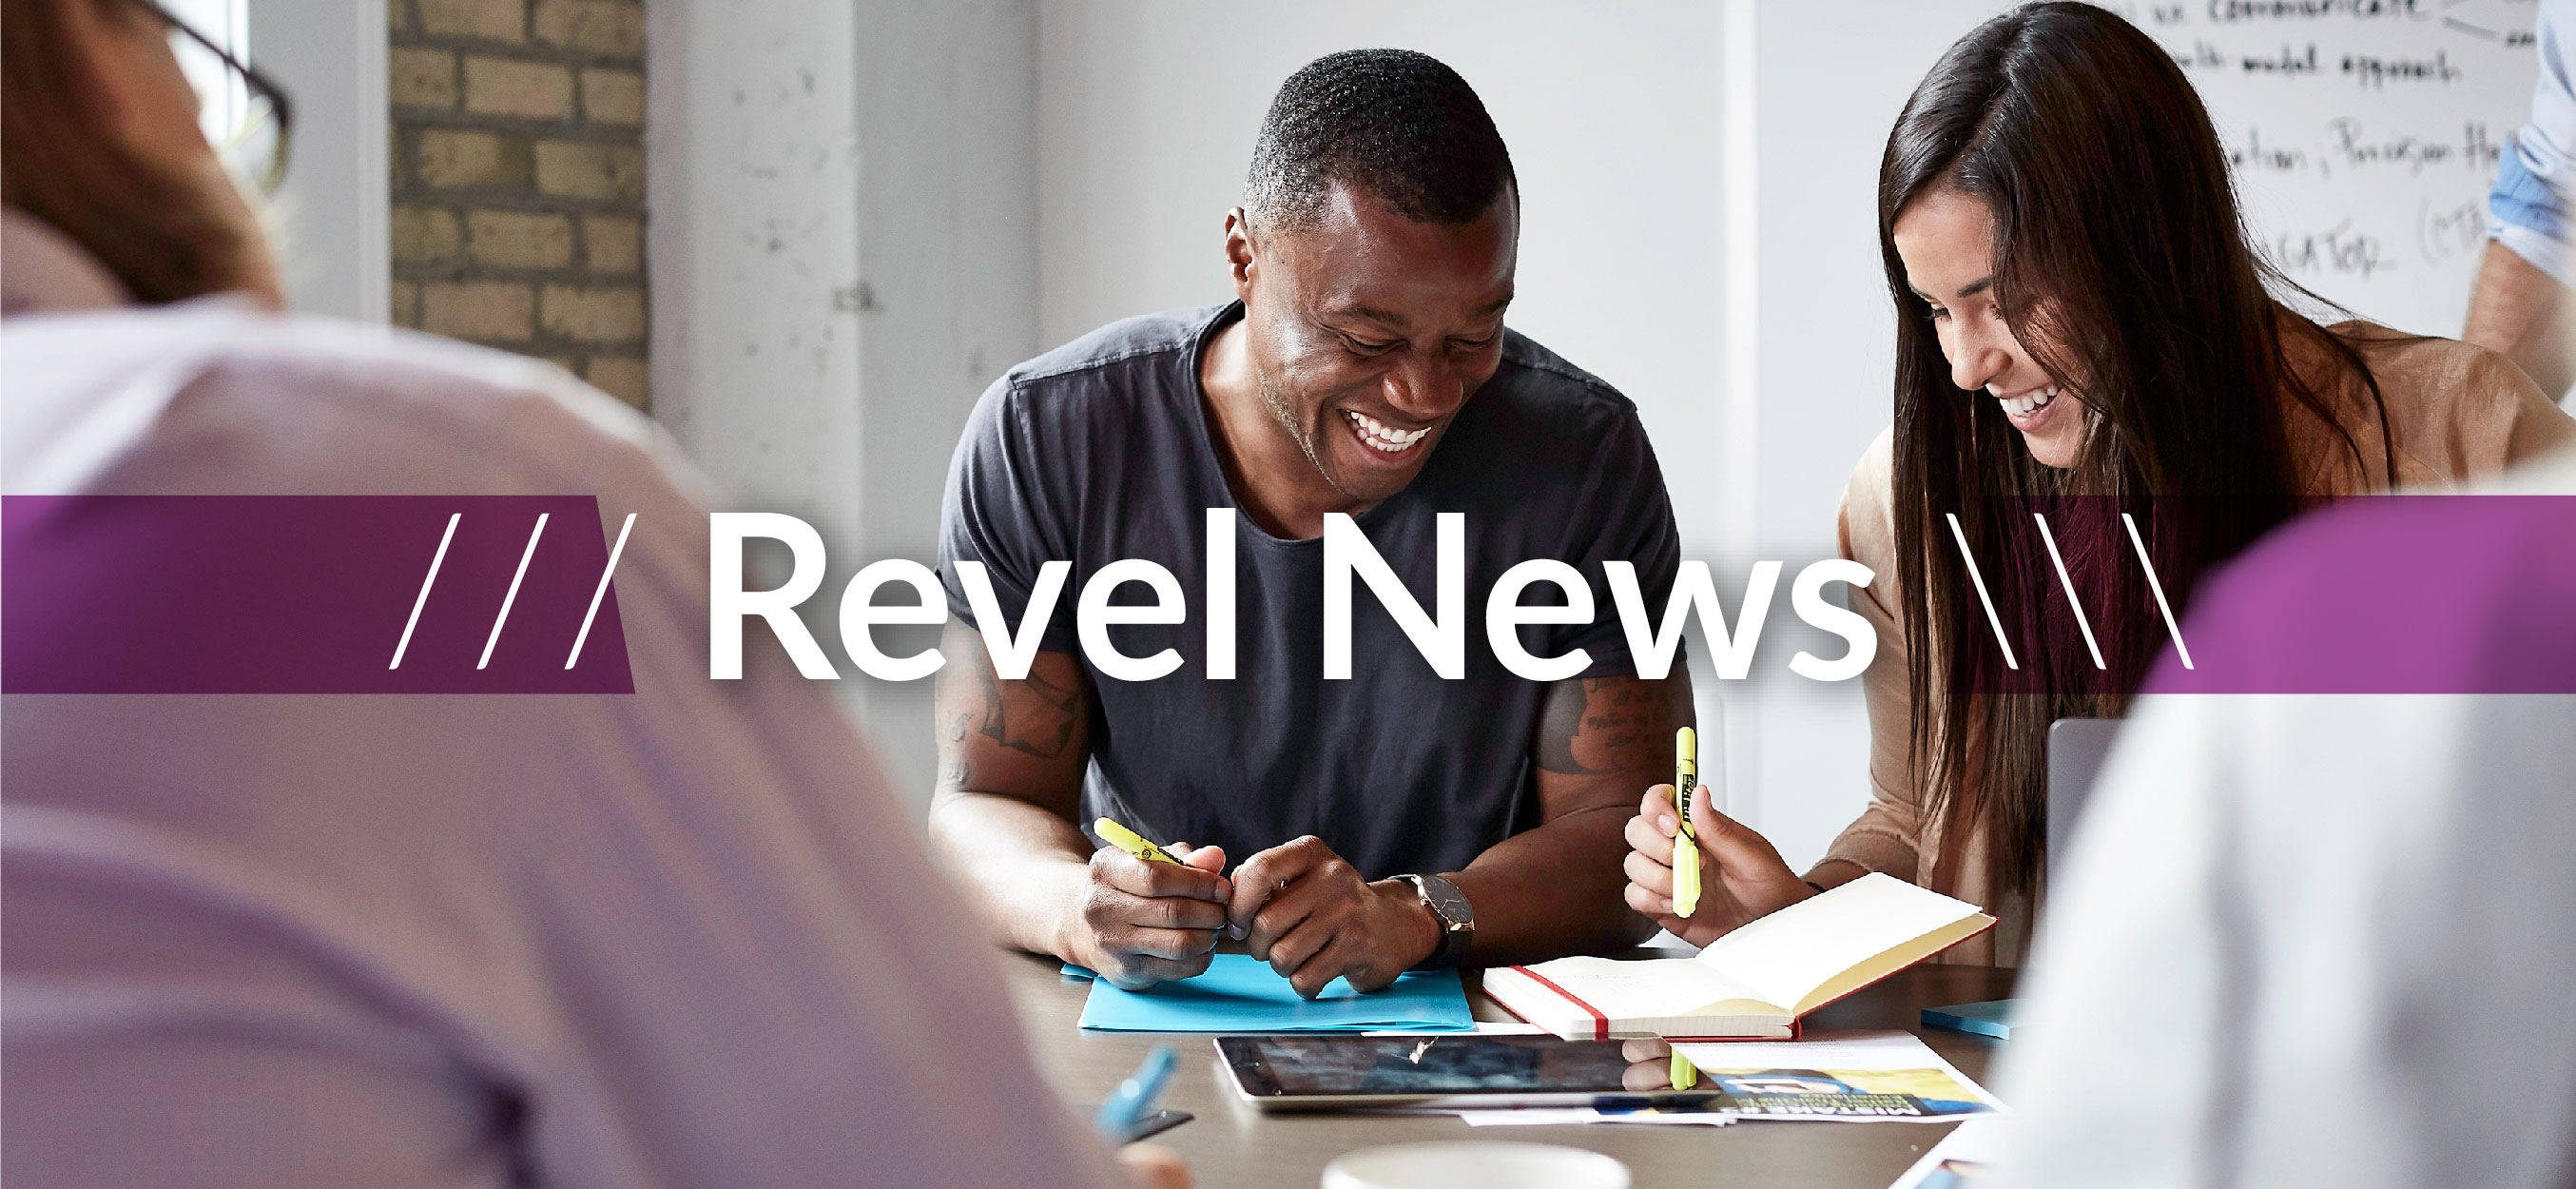 Revel News Alert: Revel Assists Health Plans in Building Star Ratings During COVID-19 Pandemic